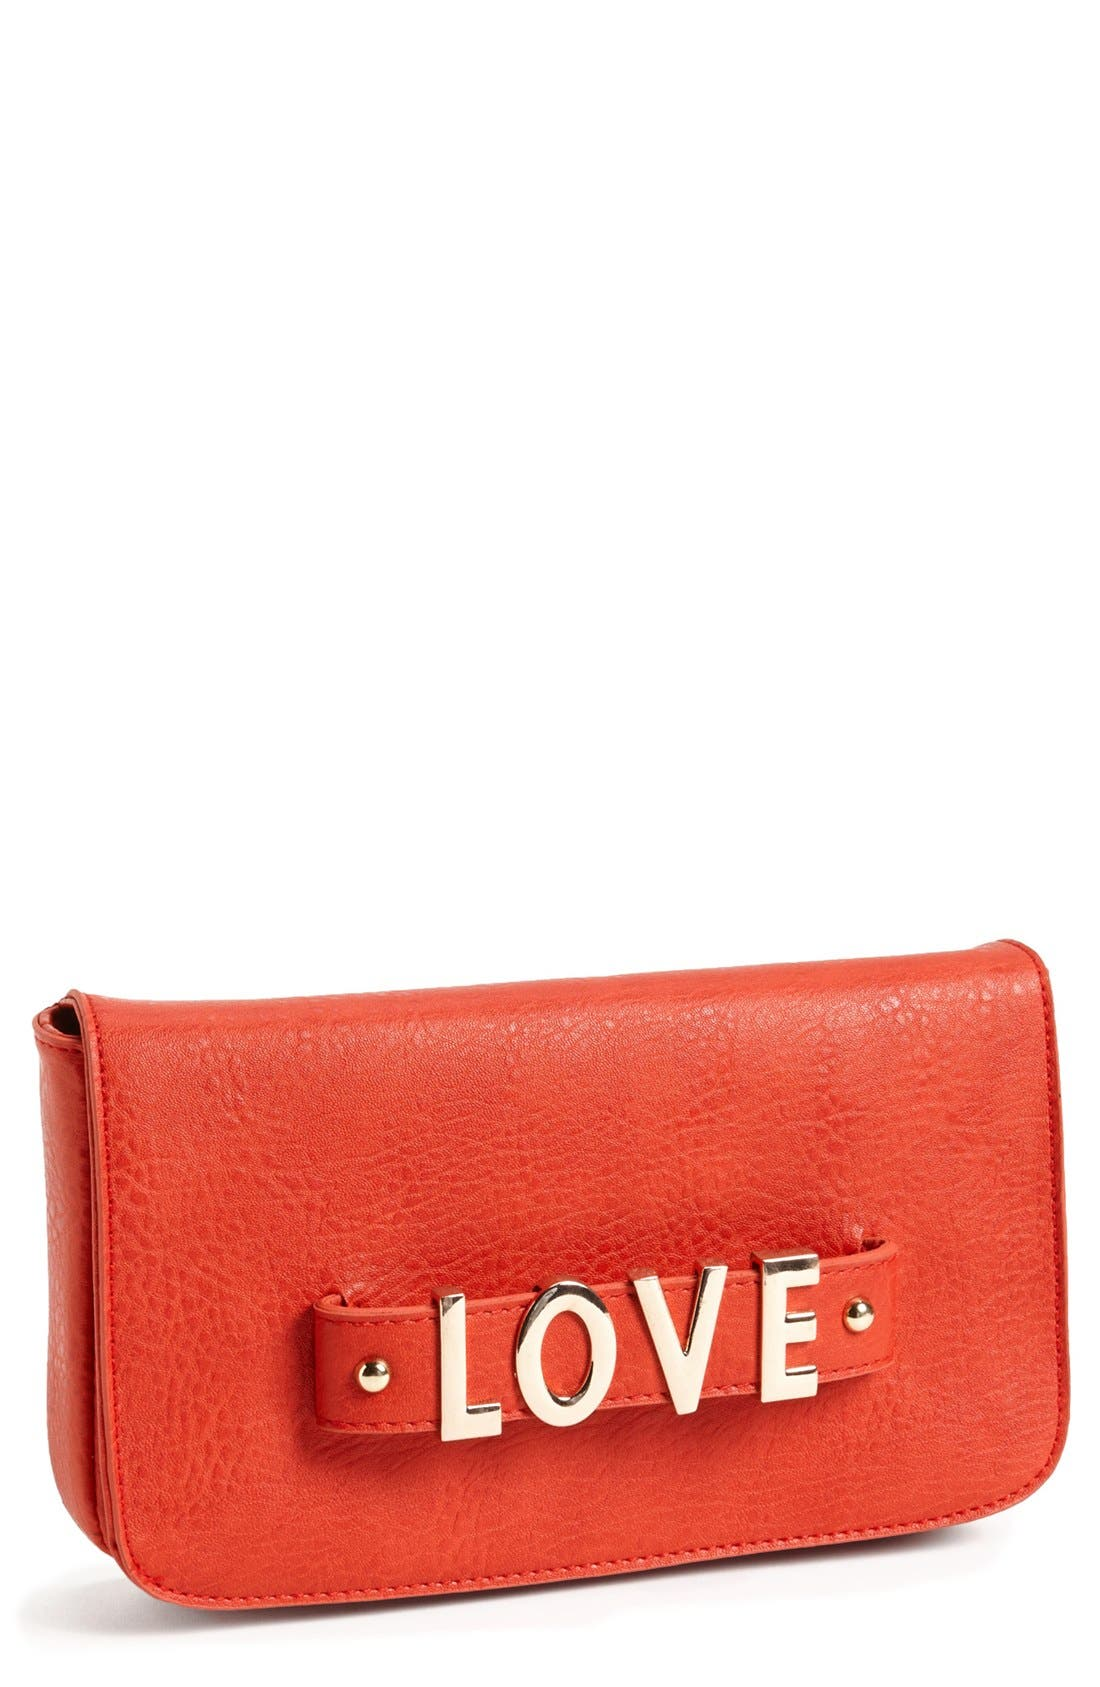 Main Image - Street Level Faux Leather Clutch